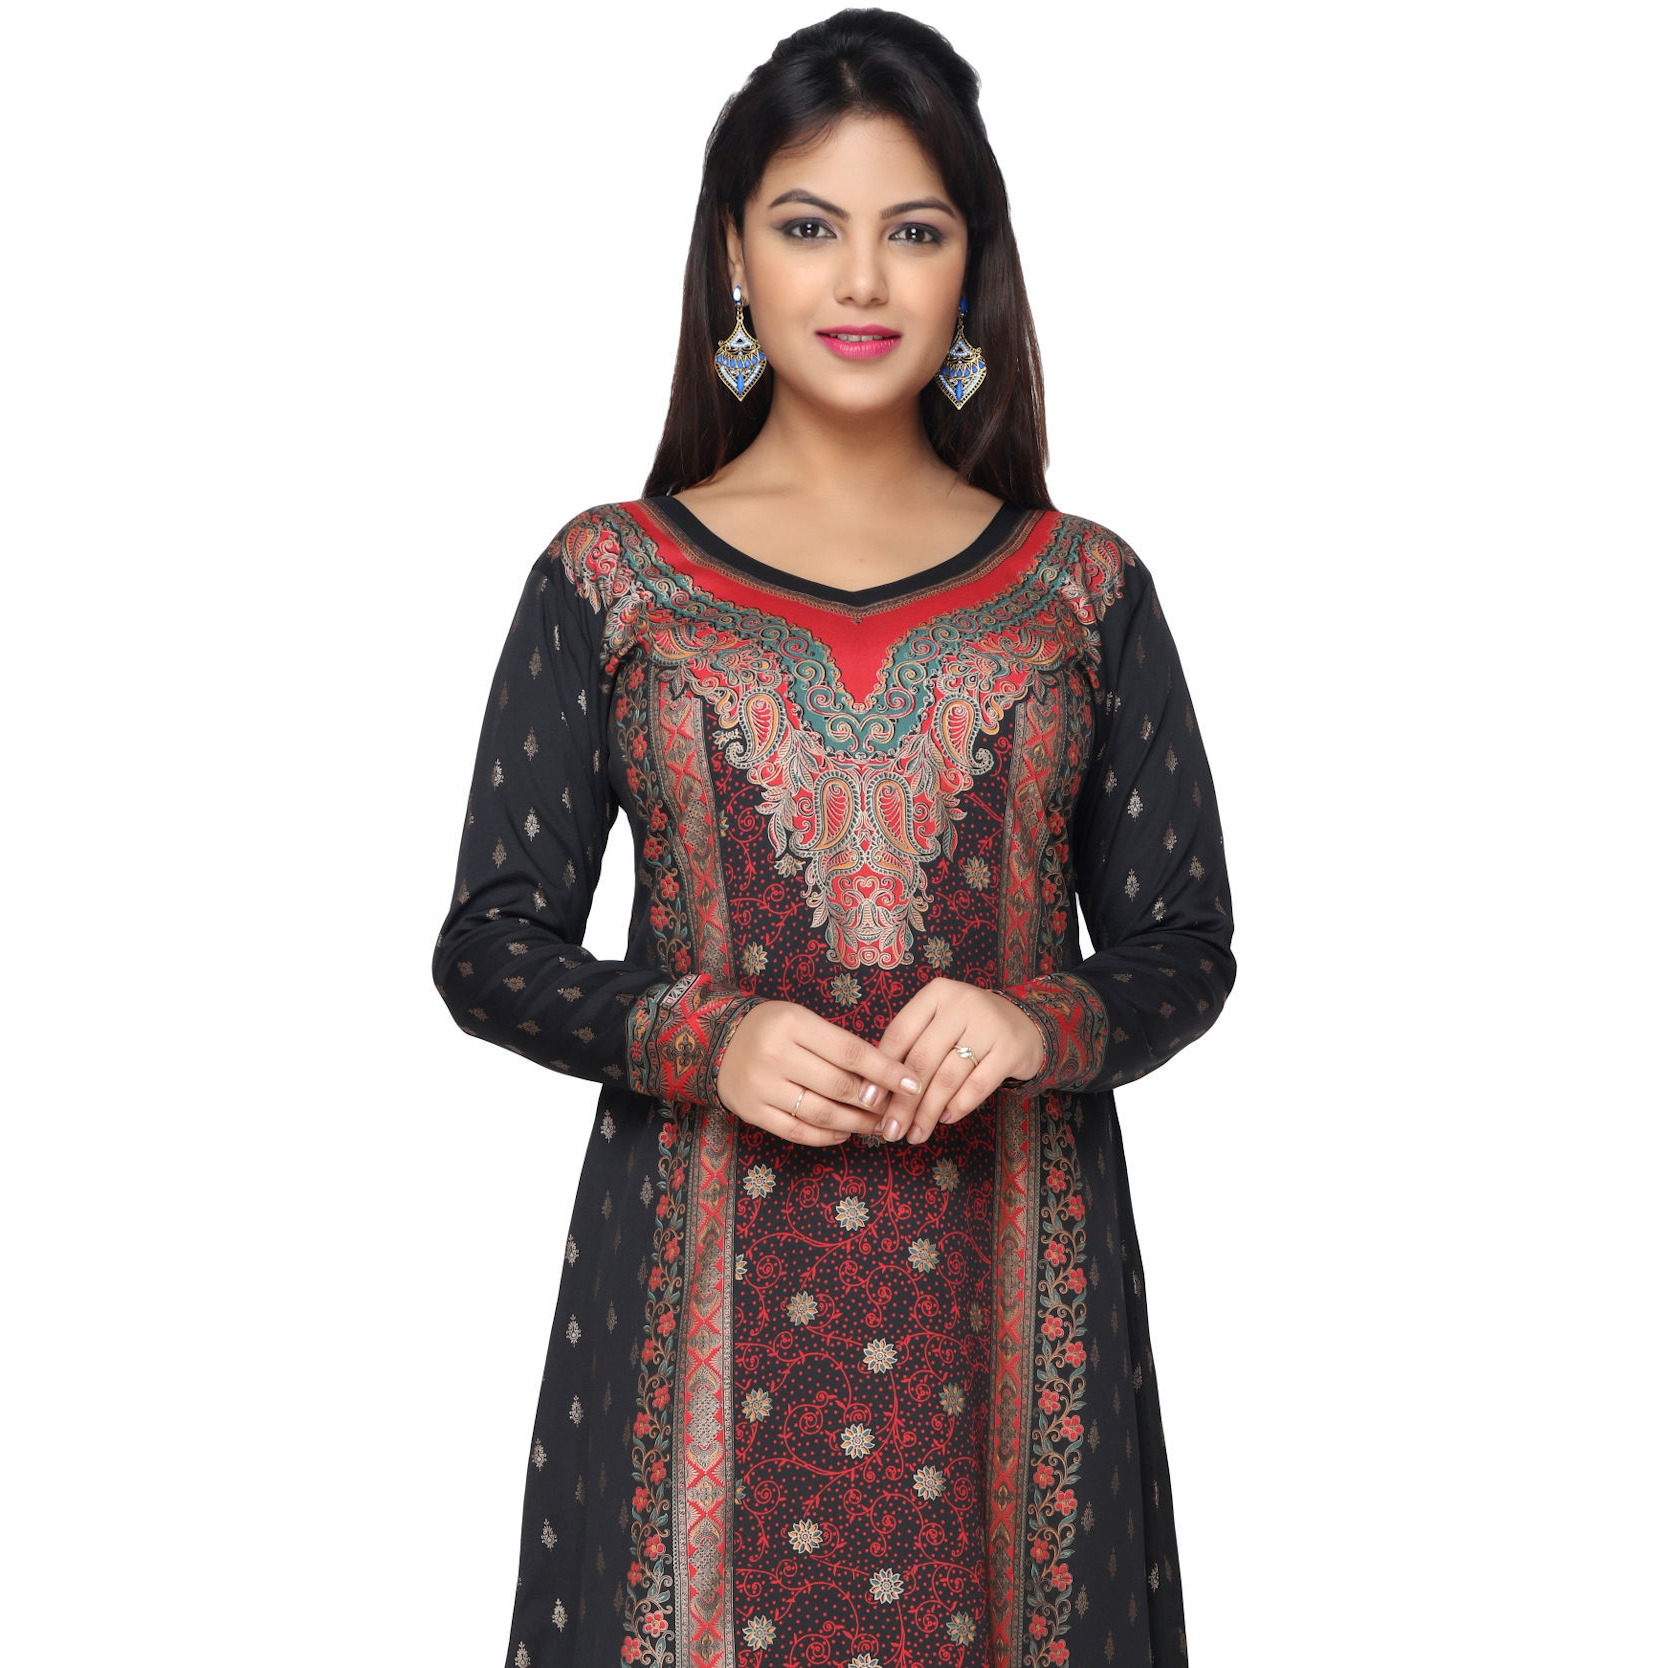 TrendyFashionMall Black-Red Gold Print Kaftan Abaya Maxi Dress KFT01031 S-38 (Size:52 - 5X-LARGE, Color:TFMKFT01031-BLACK-RED)